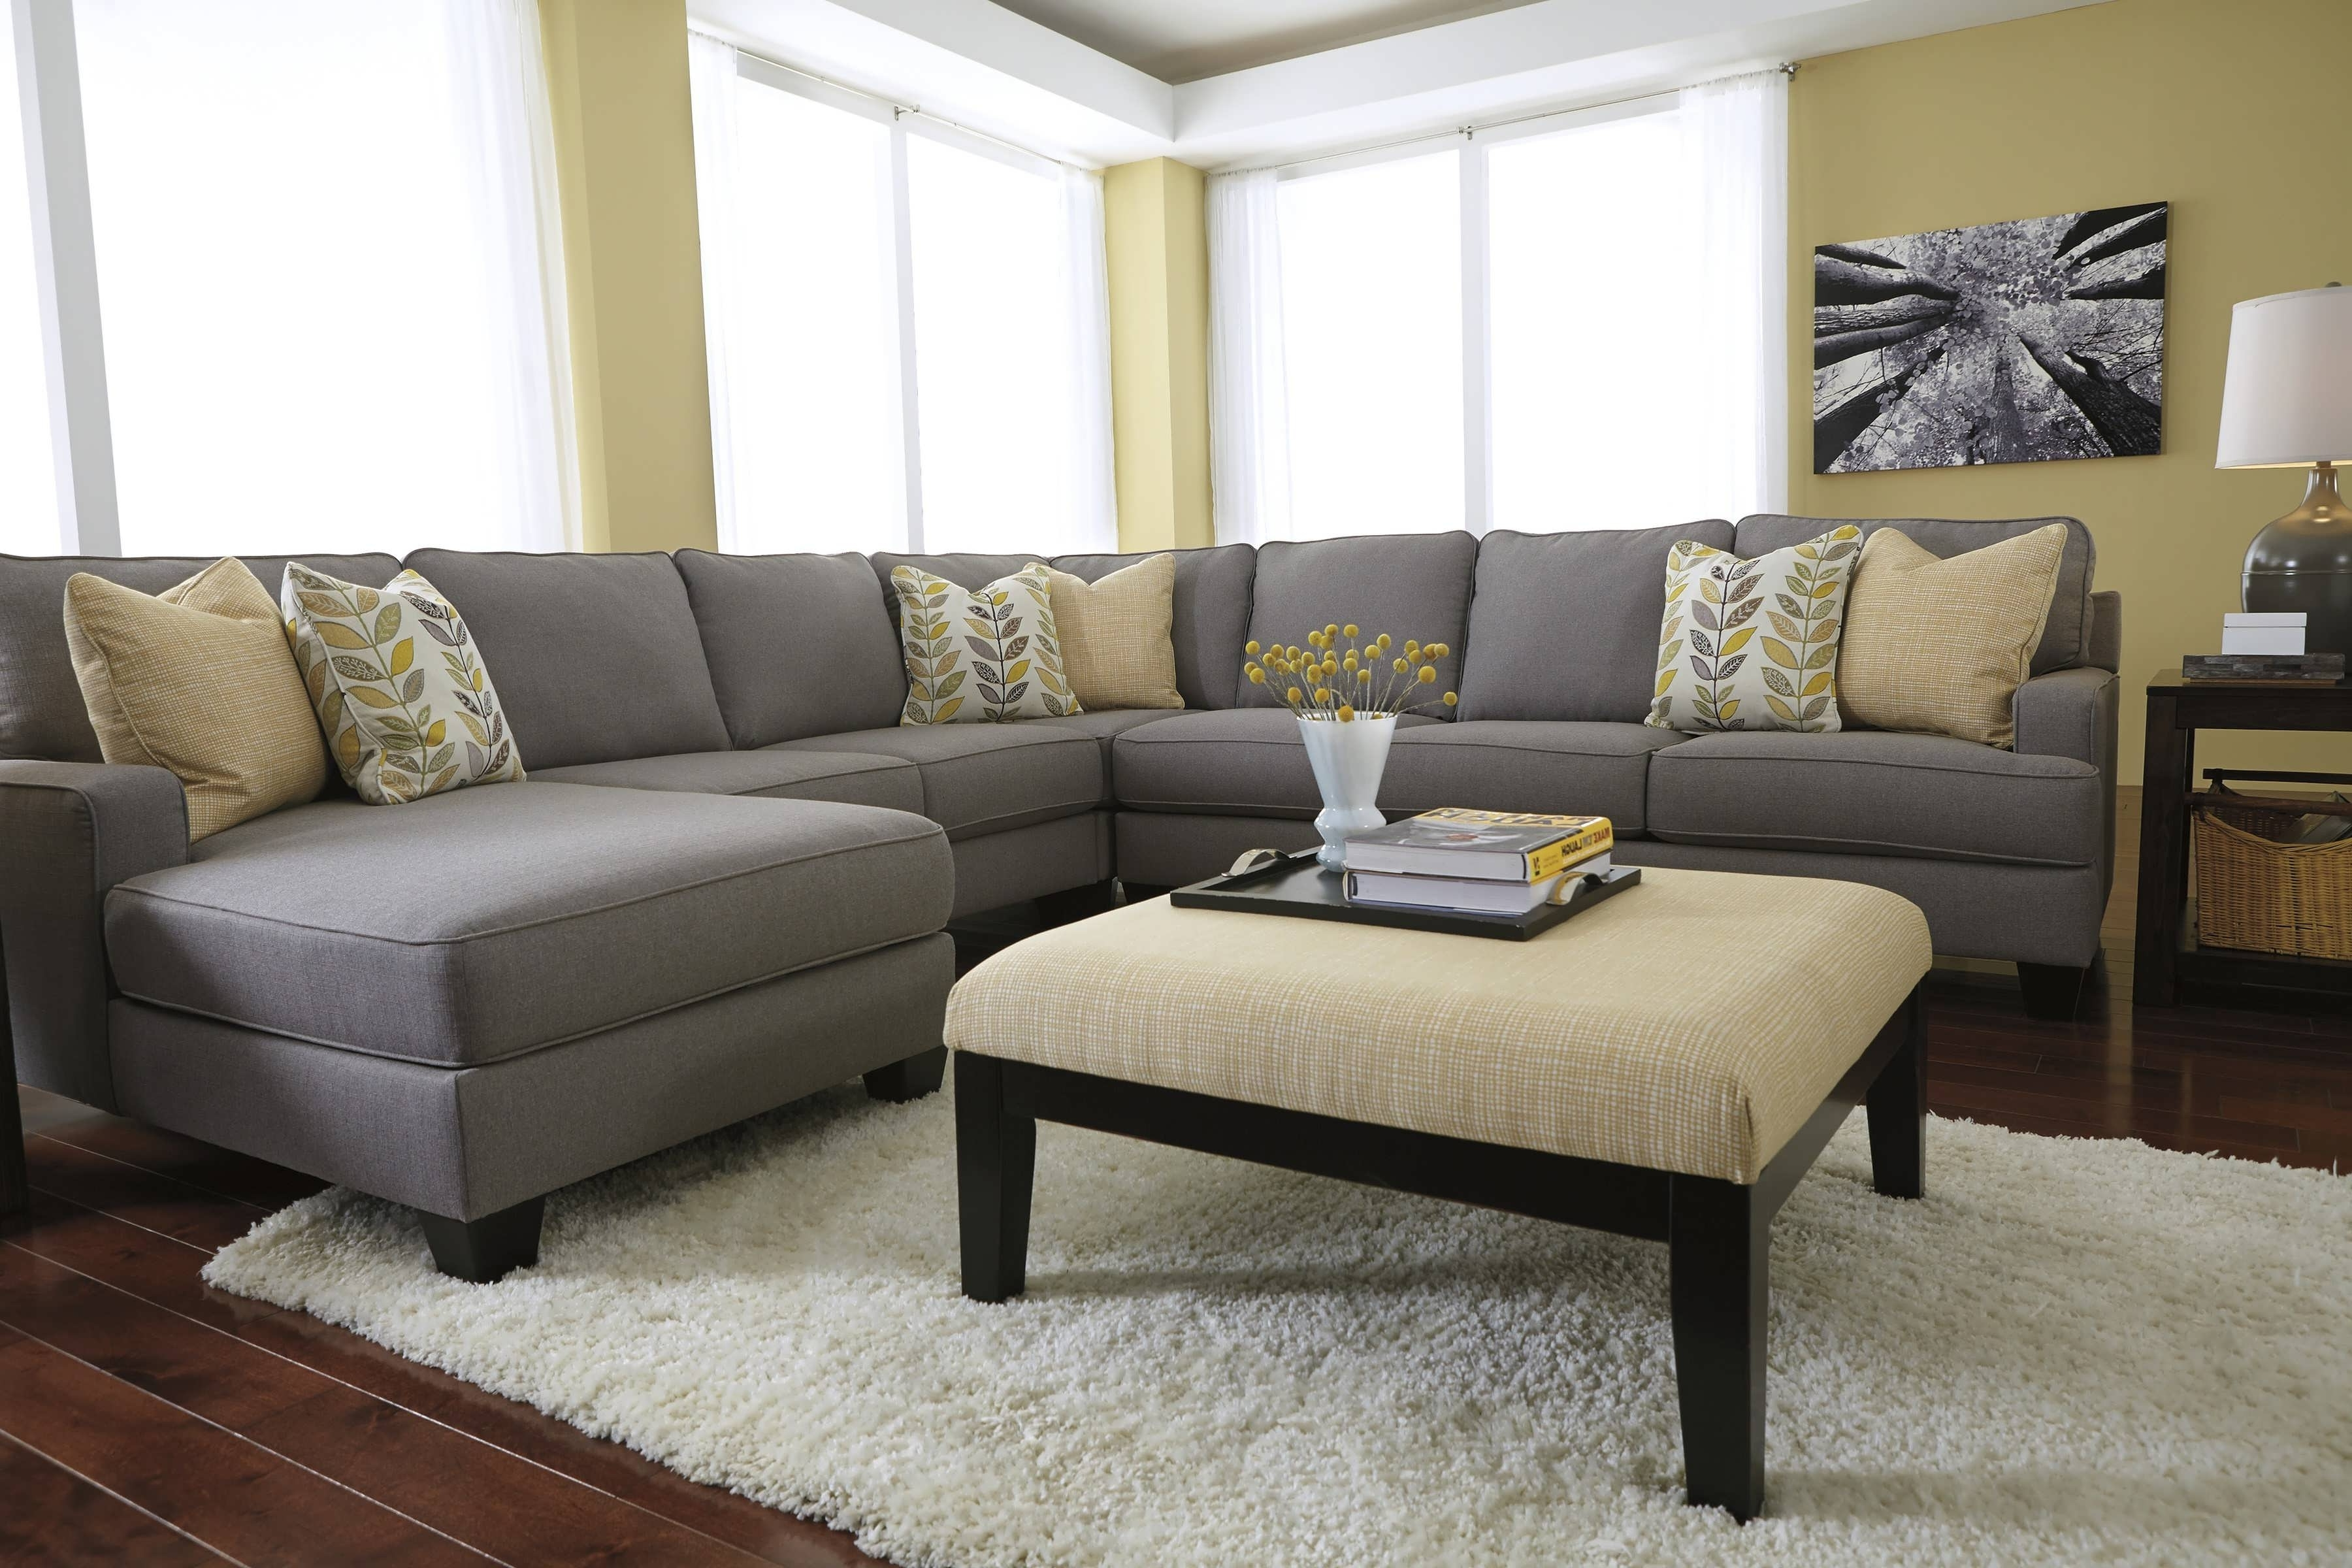 Most Recently Released Sofa : Modular Sofa Double Chaise Sectional Leather Sectional Sofa Regarding Coffee Tables For Sectional Sofa With Chaise (View 9 of 15)